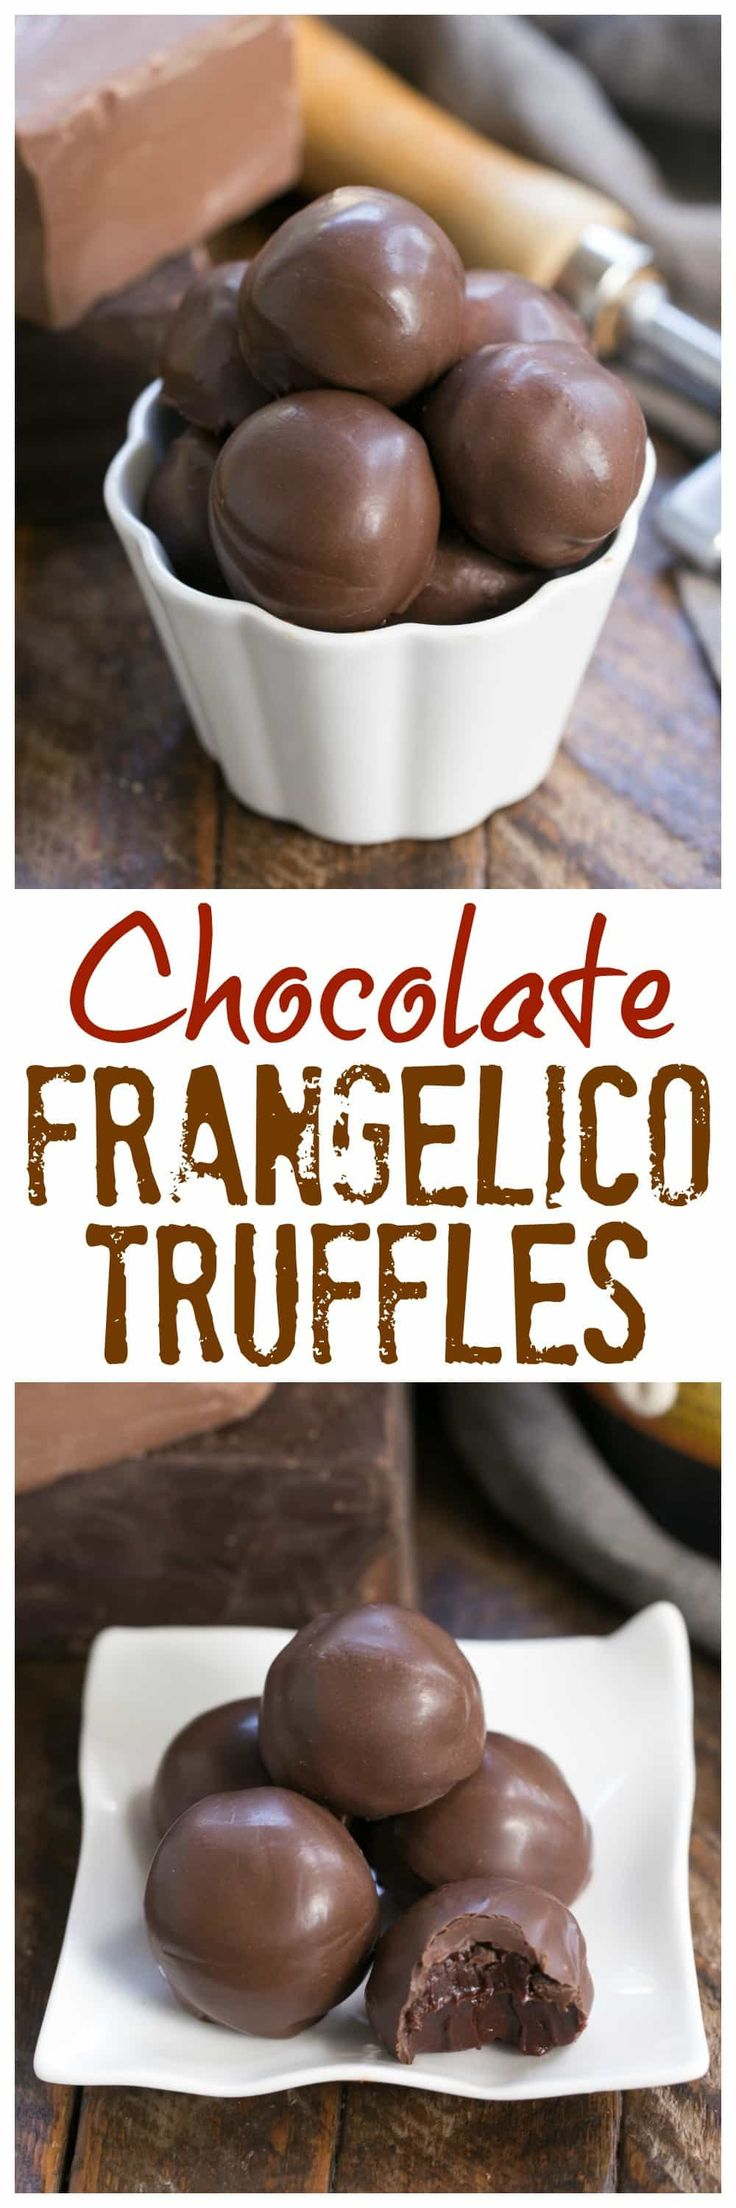 Chocolate Frangelico Truffles | Exquisite truffles flavored with hazelnut liqueur plus a guide for tempering chocolate